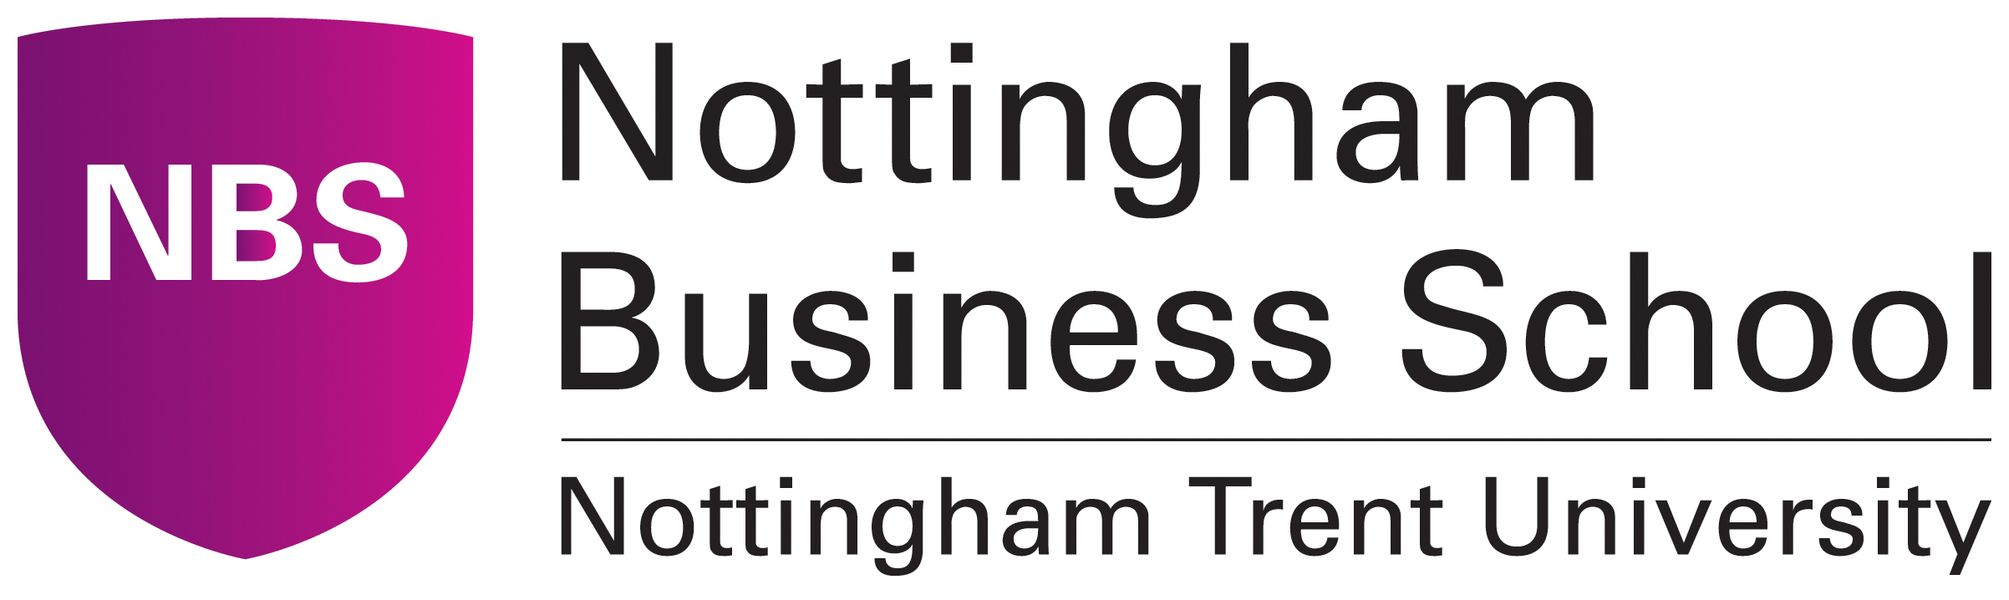 Nottingham Business School logo